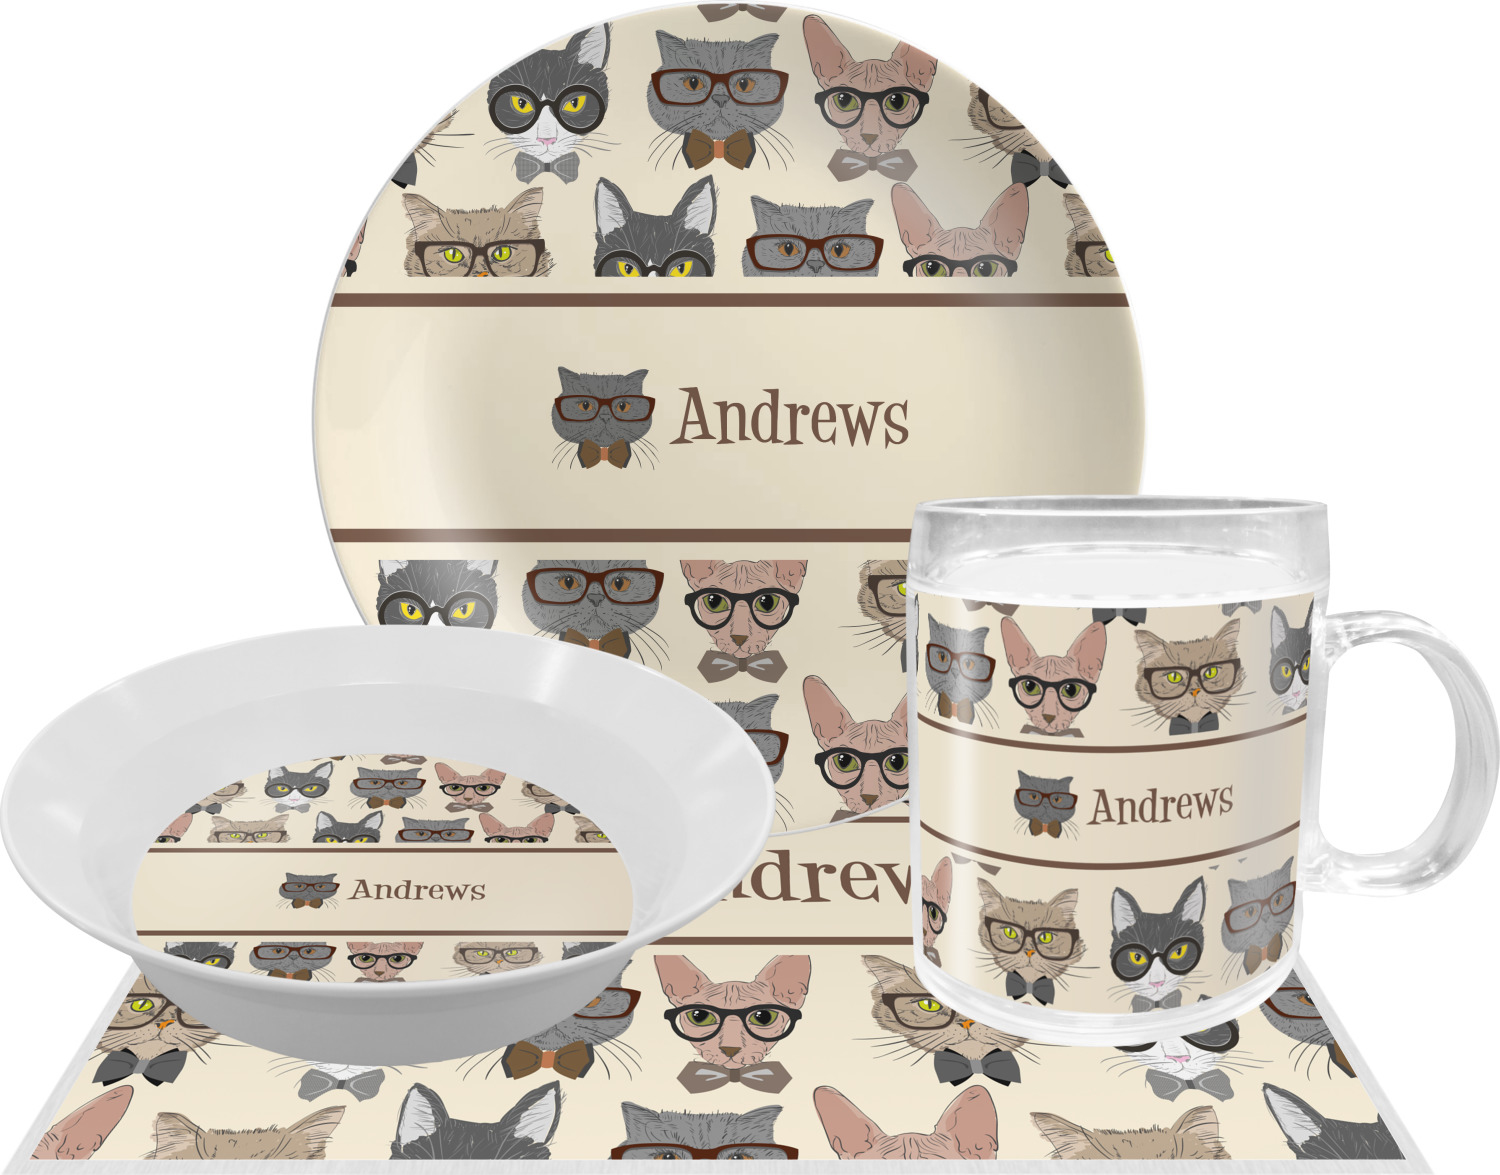 Hipster Cats Dinner Set - 4 Pc (Personalized)  sc 1 st  YouCustomizeIt & Hipster Cats Dinner Set - 4 Pc (Personalized) - YouCustomizeIt